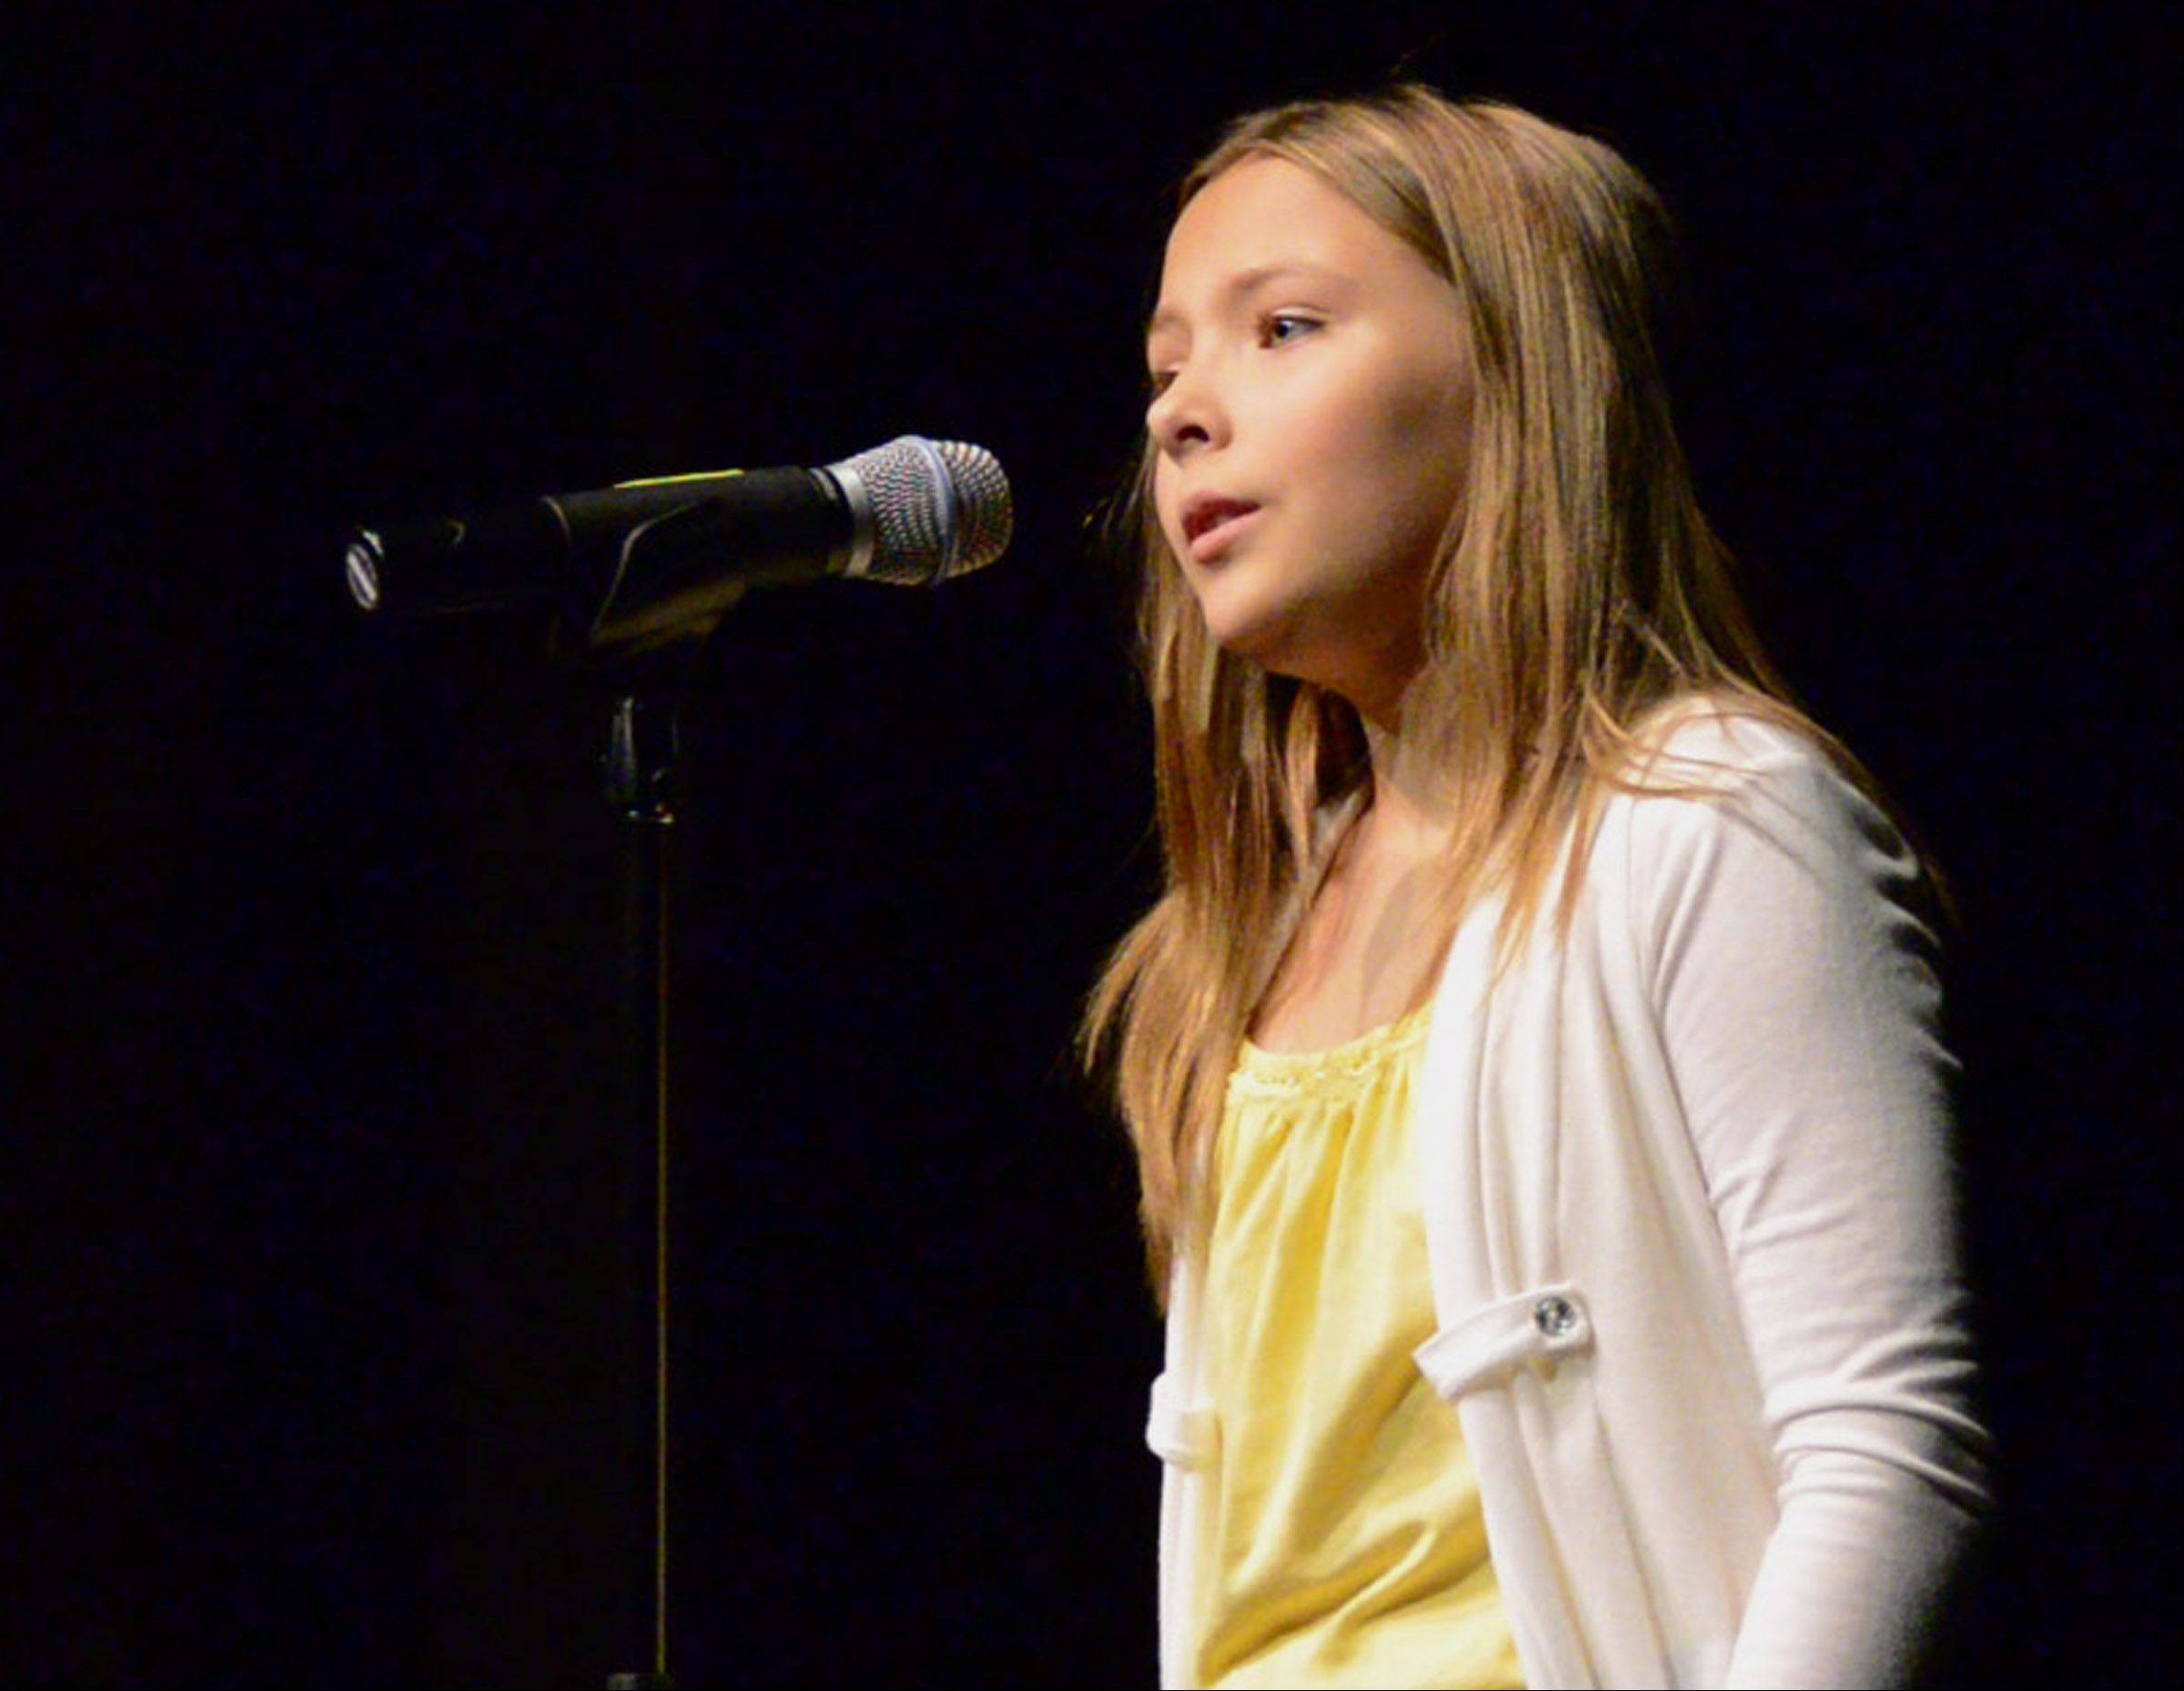 Agne G, 10, of Downers Grove, is one of 10 finalists in Suburban Chicago's Got Talent. Voting conludes Friday at noon.